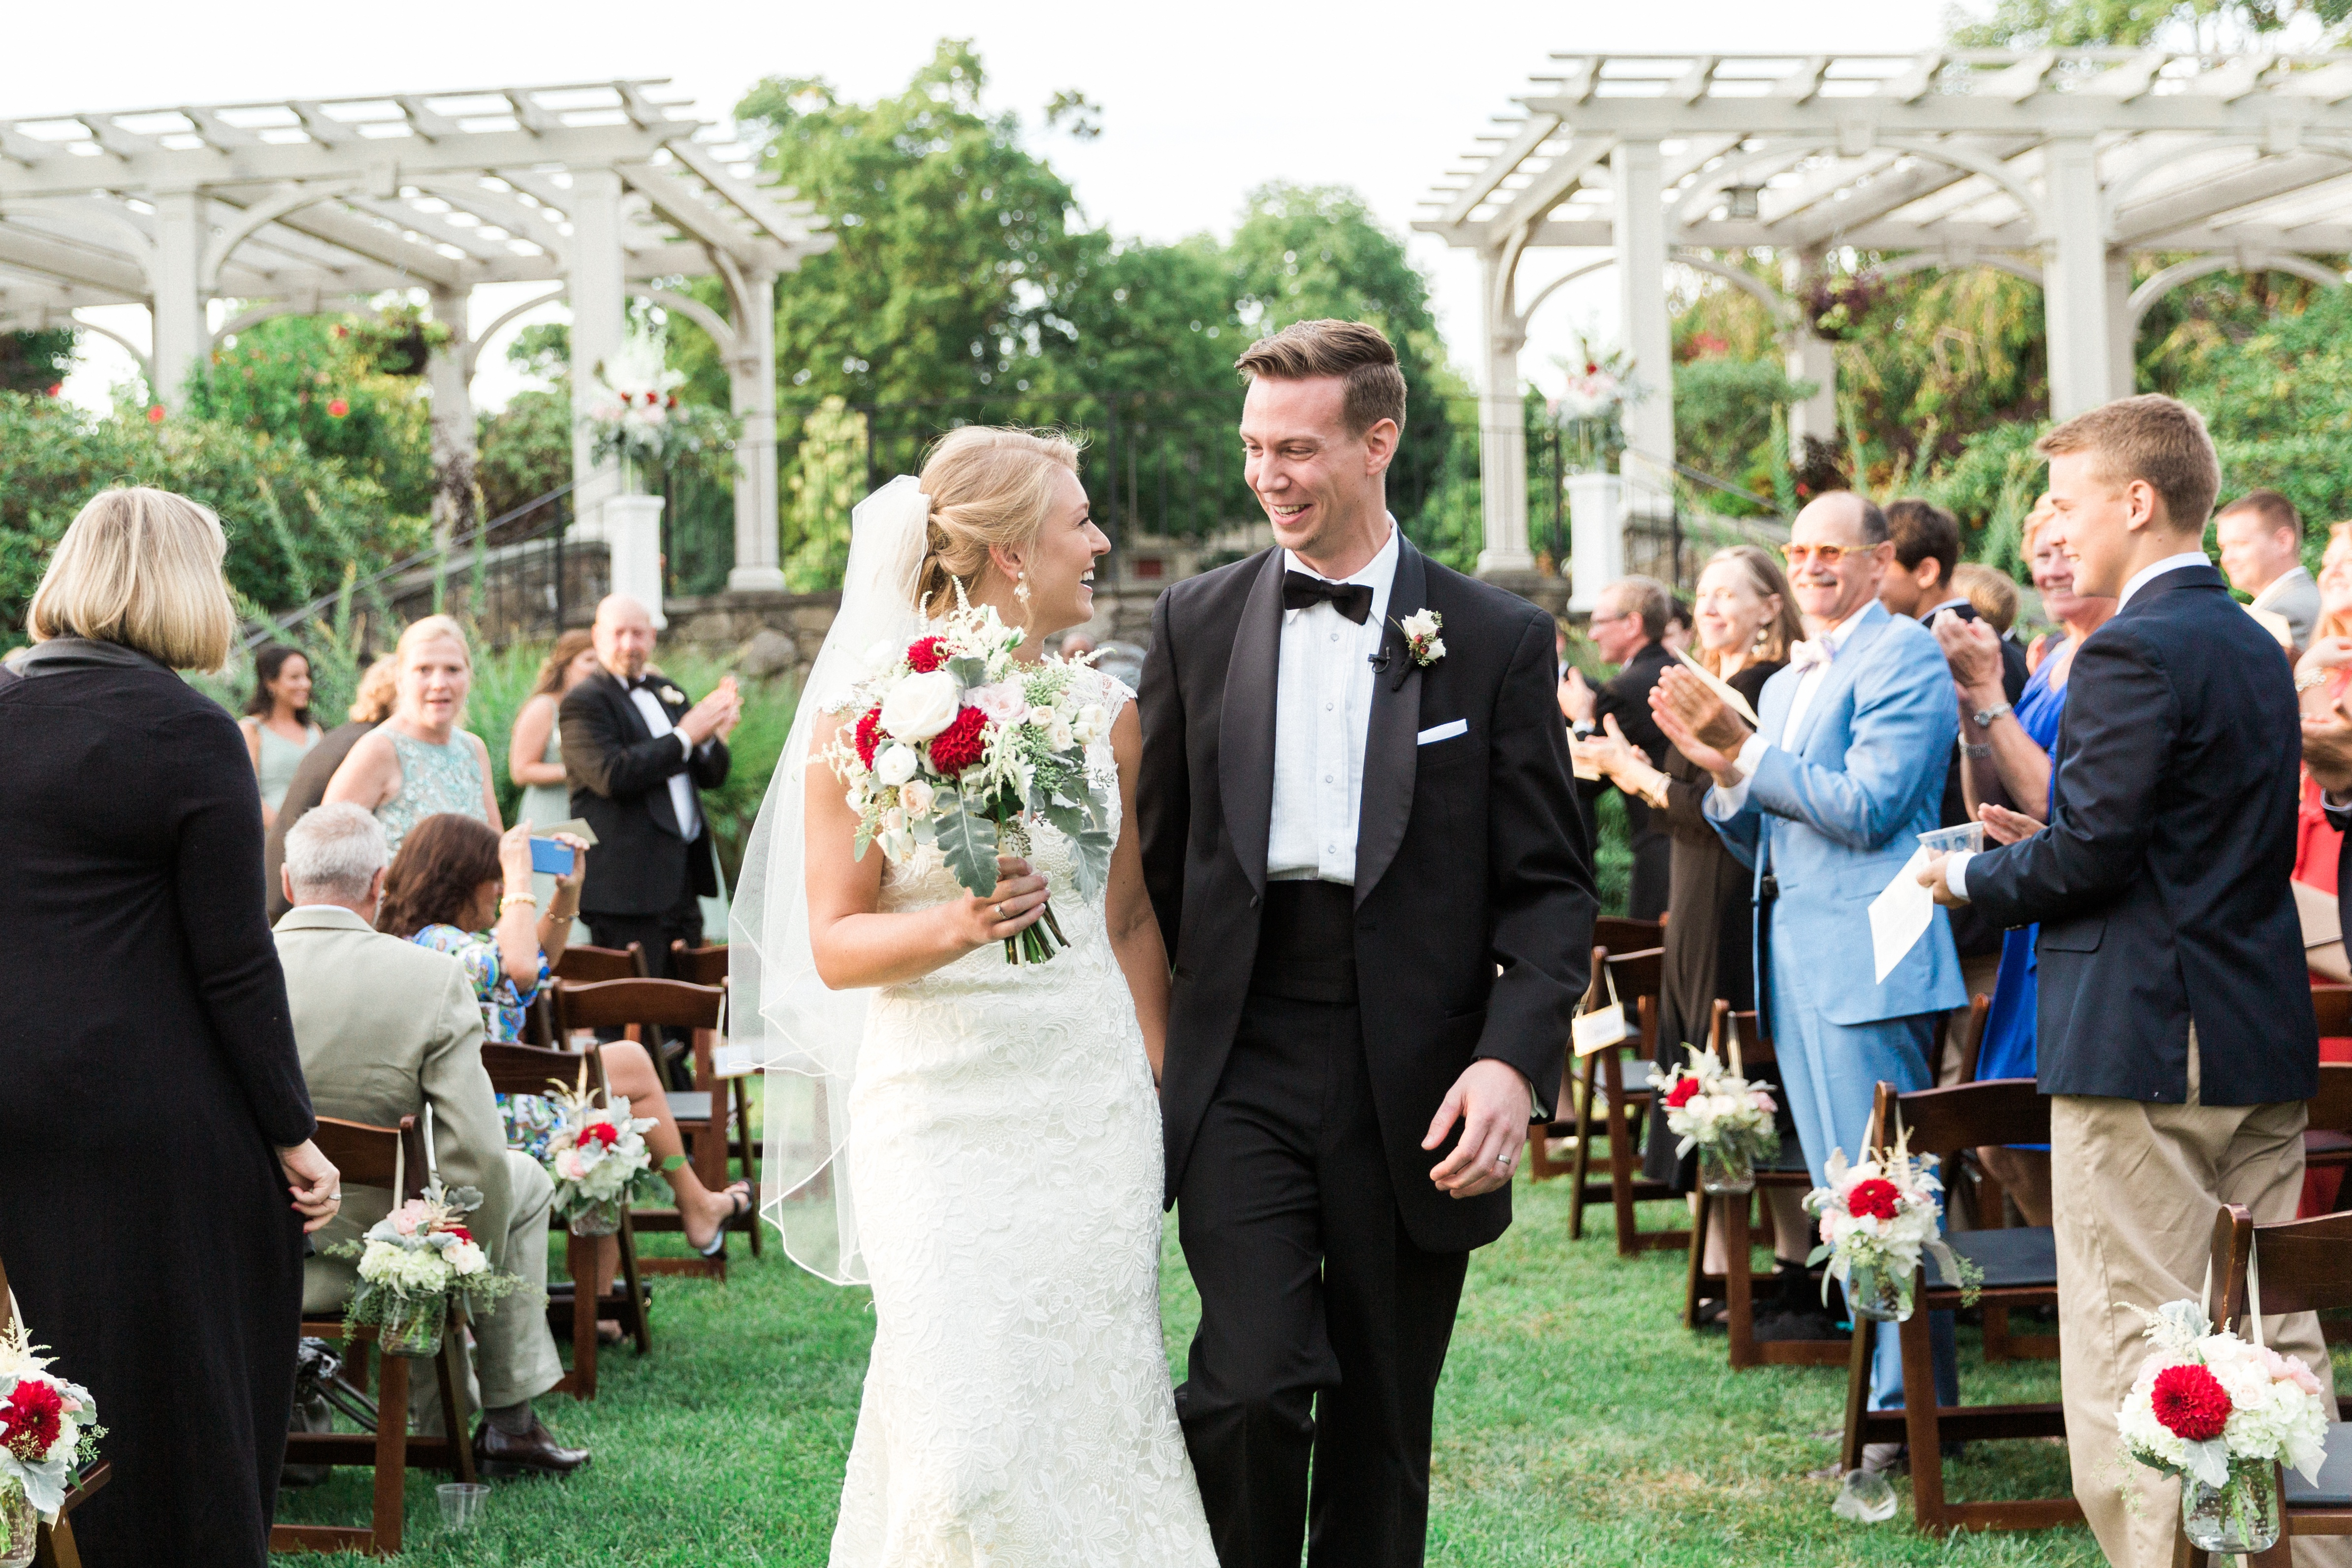 Weddings at Tower Hill Botanic Garden